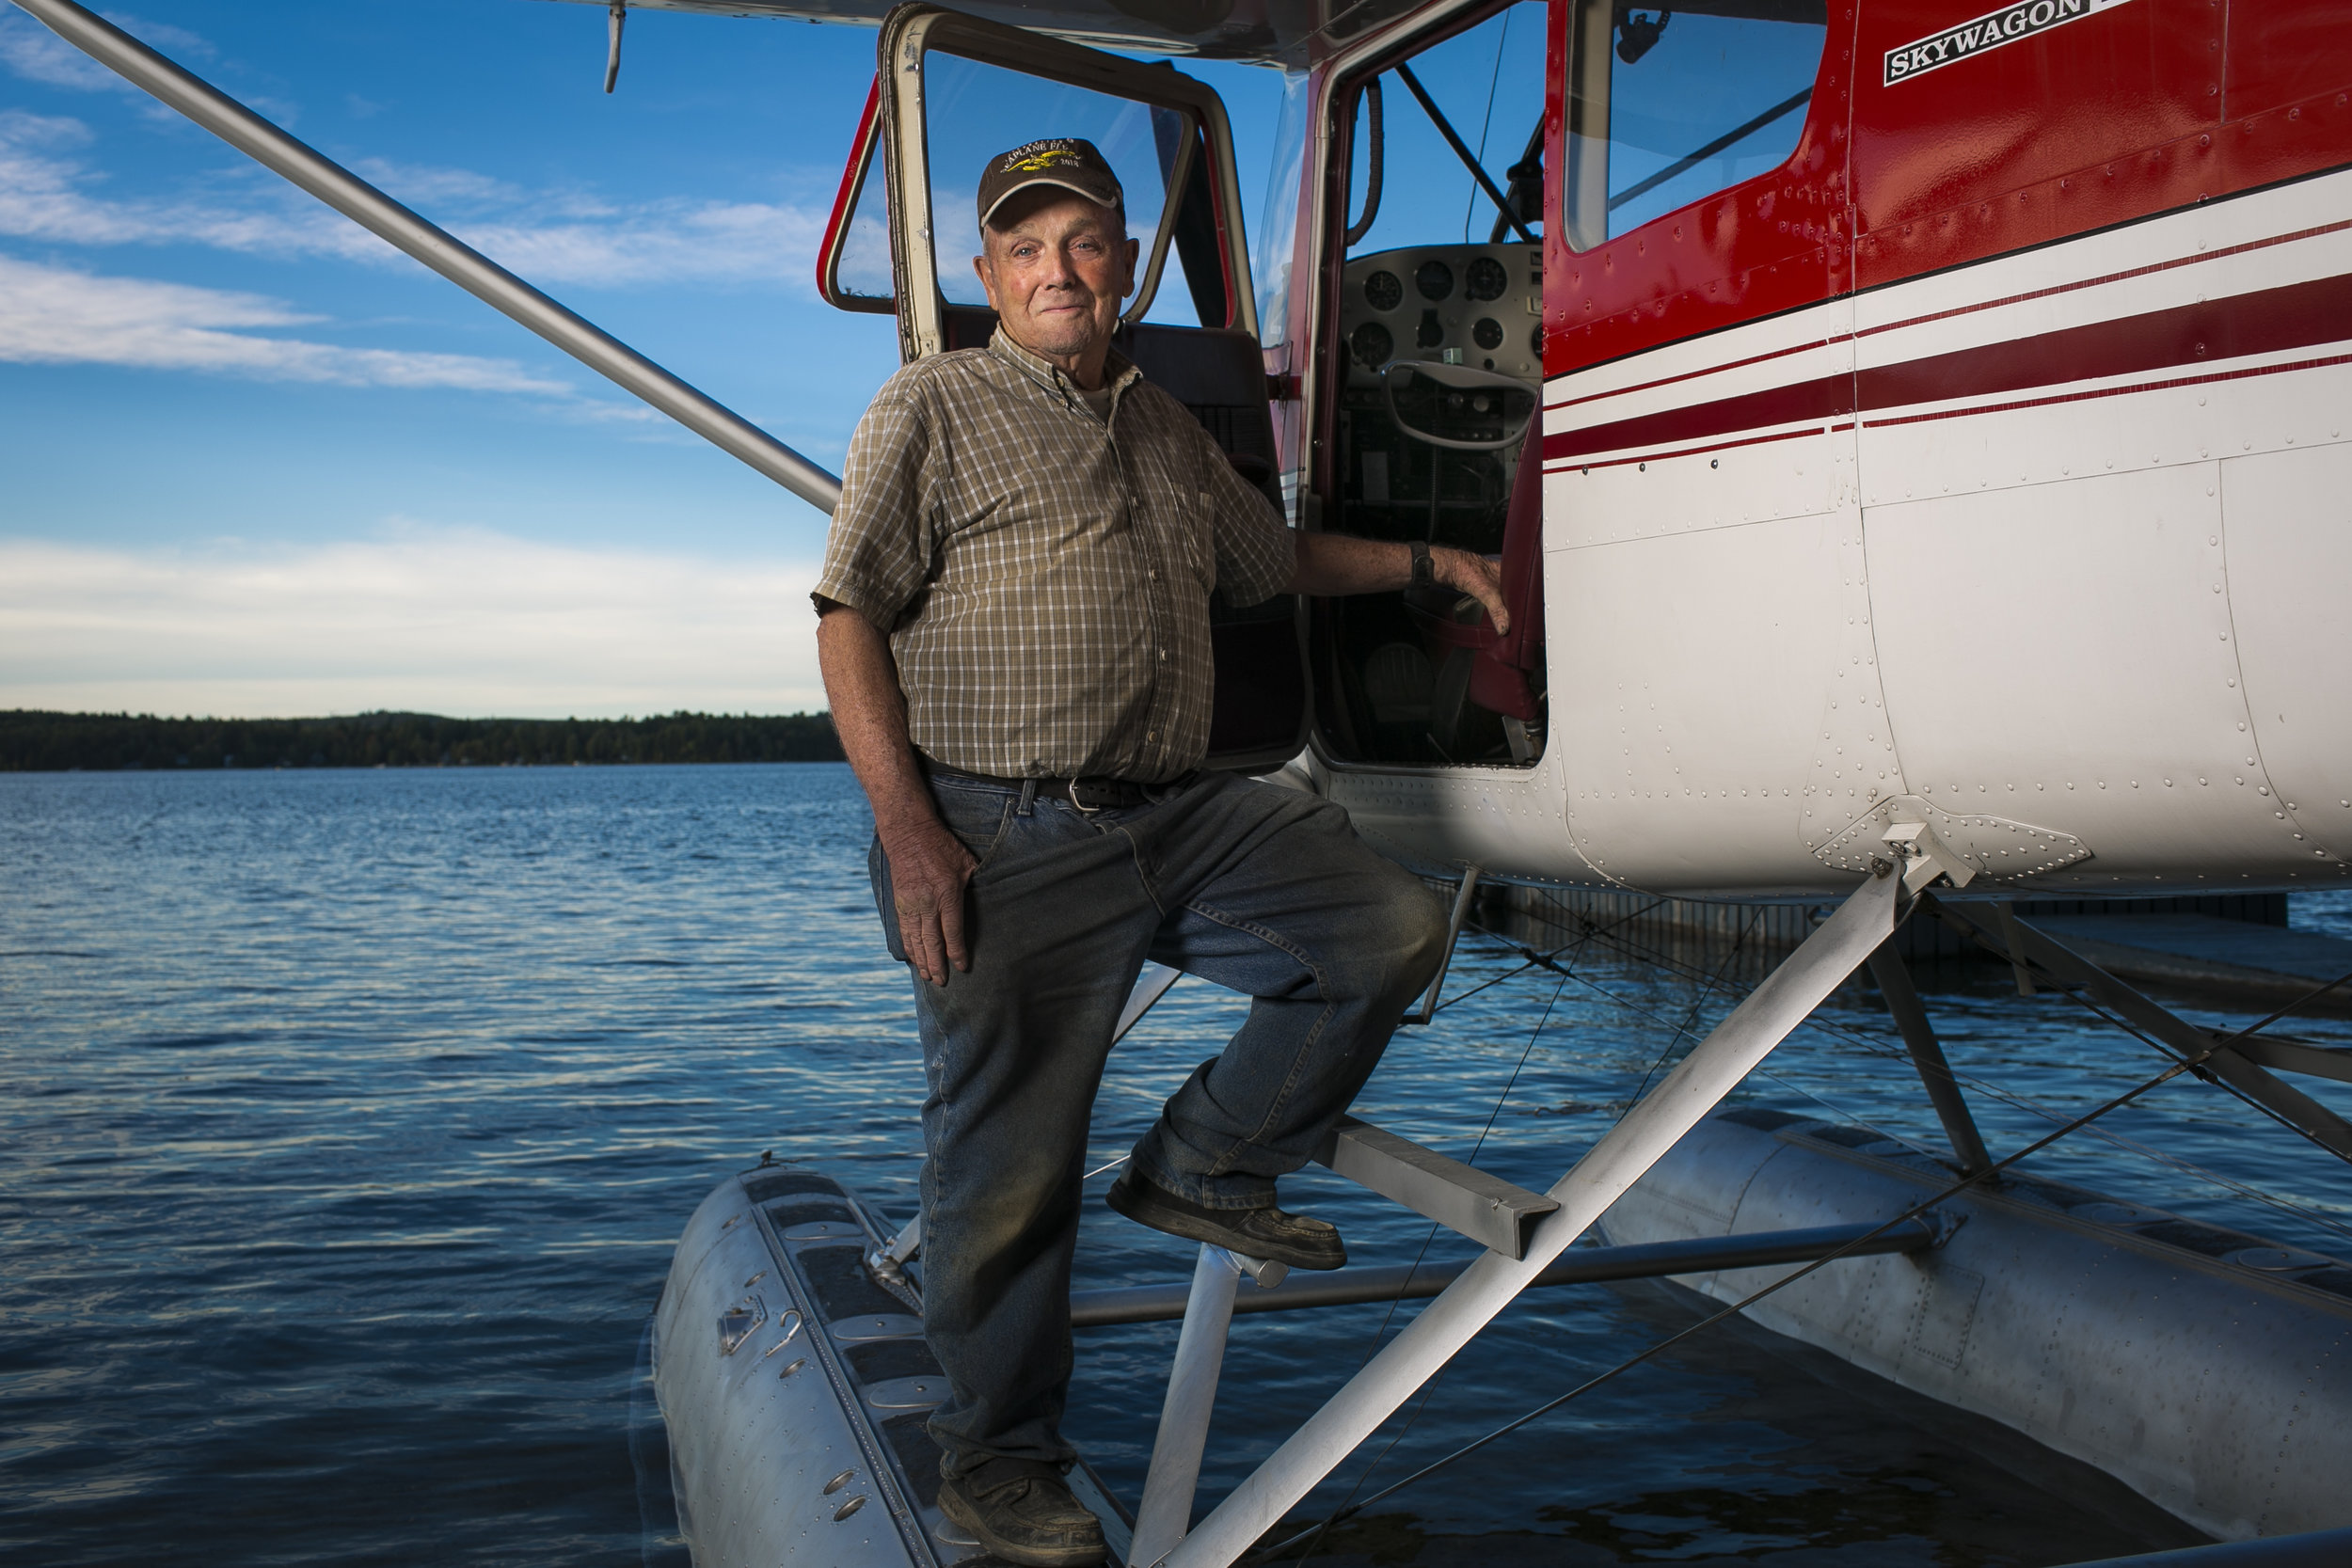 "George Dunn, 85, has had a lifelong passion for flying. He first got his license in 1952 and now shares that passion with seven other members of his family who fly and own planes, including his son who now flies KC-135s for the Air National Guard in Bangor. He and his family, known as ""The Flying Dunn's,"" have been part of the Beech Hill Pond community for several years—Dunn has lived on the pond, year round, for more than 45 years and hosts an annual Fourth of July event at his hanger that draws more than 1,000 people each year."